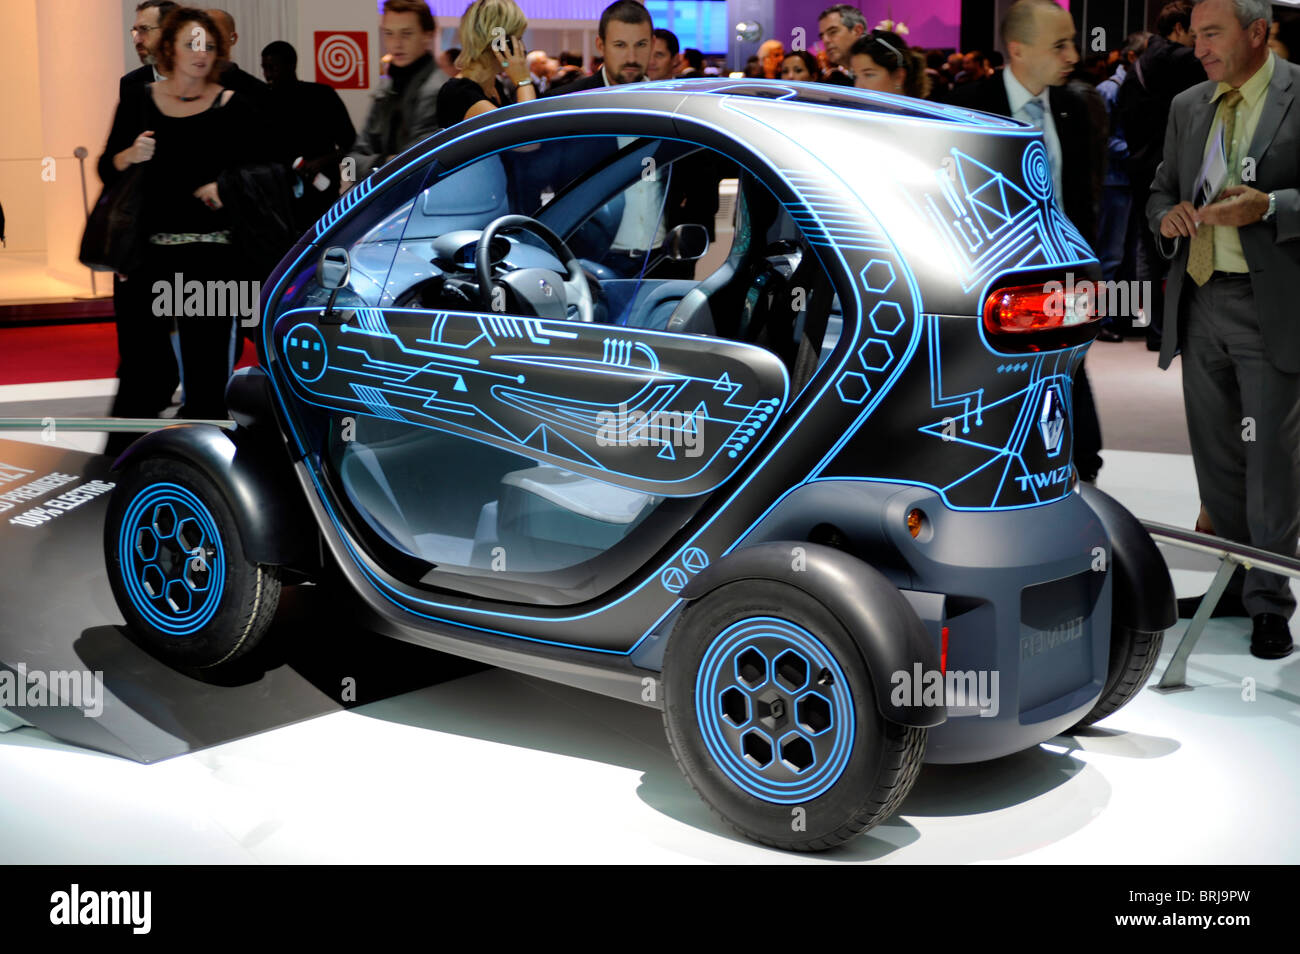 renault twizy electric car zero emission paris motor. Black Bedroom Furniture Sets. Home Design Ideas